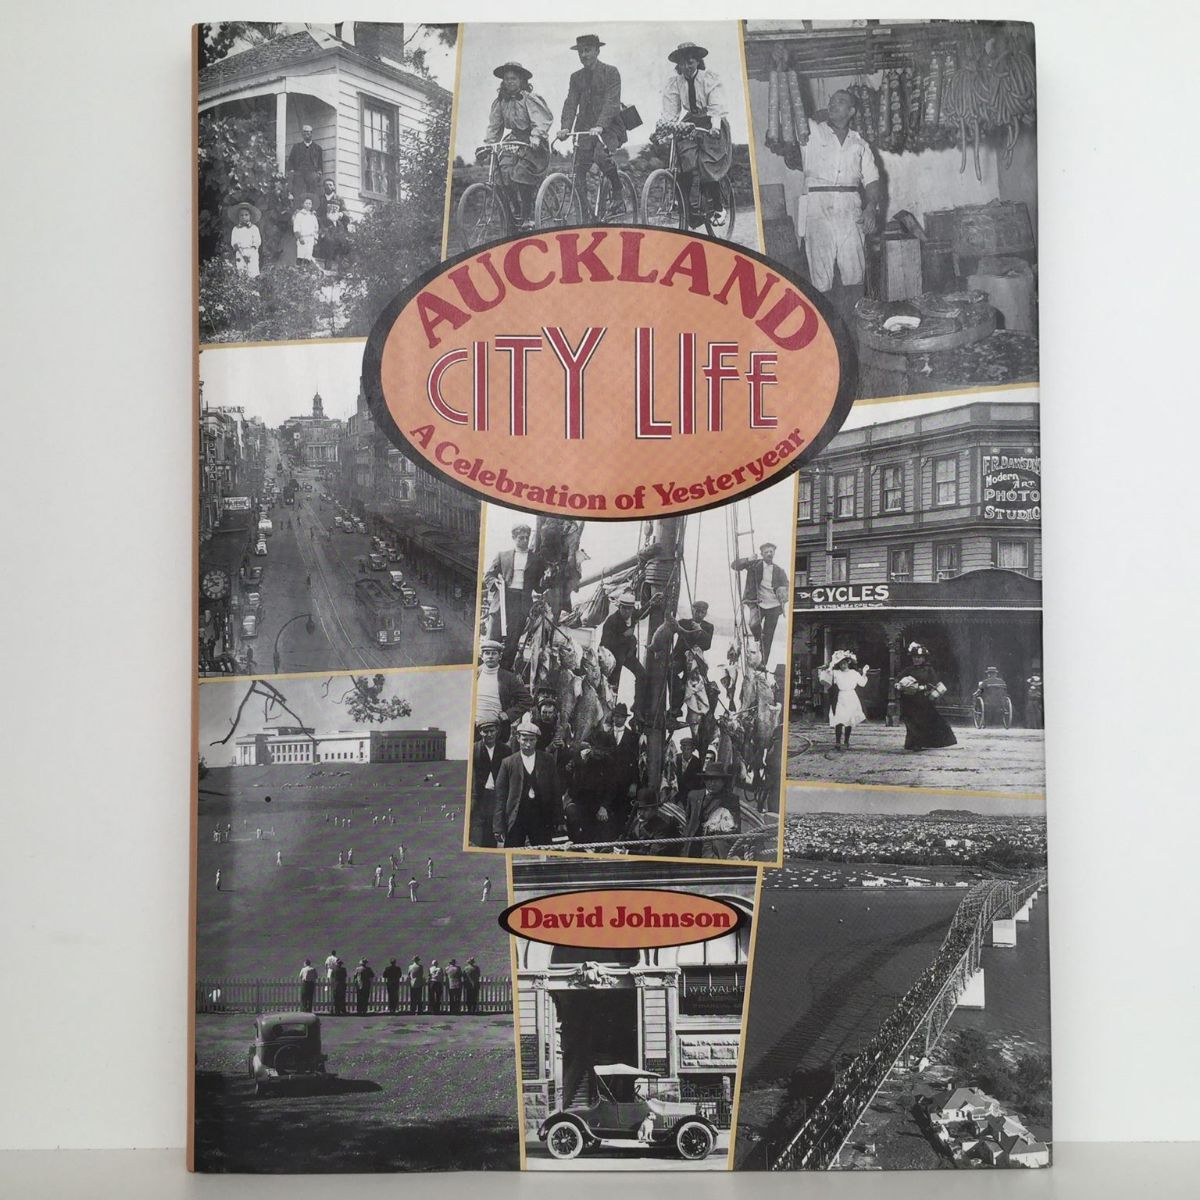 AUCKLAND CITY LIFE: A Celebration of Yesteryear